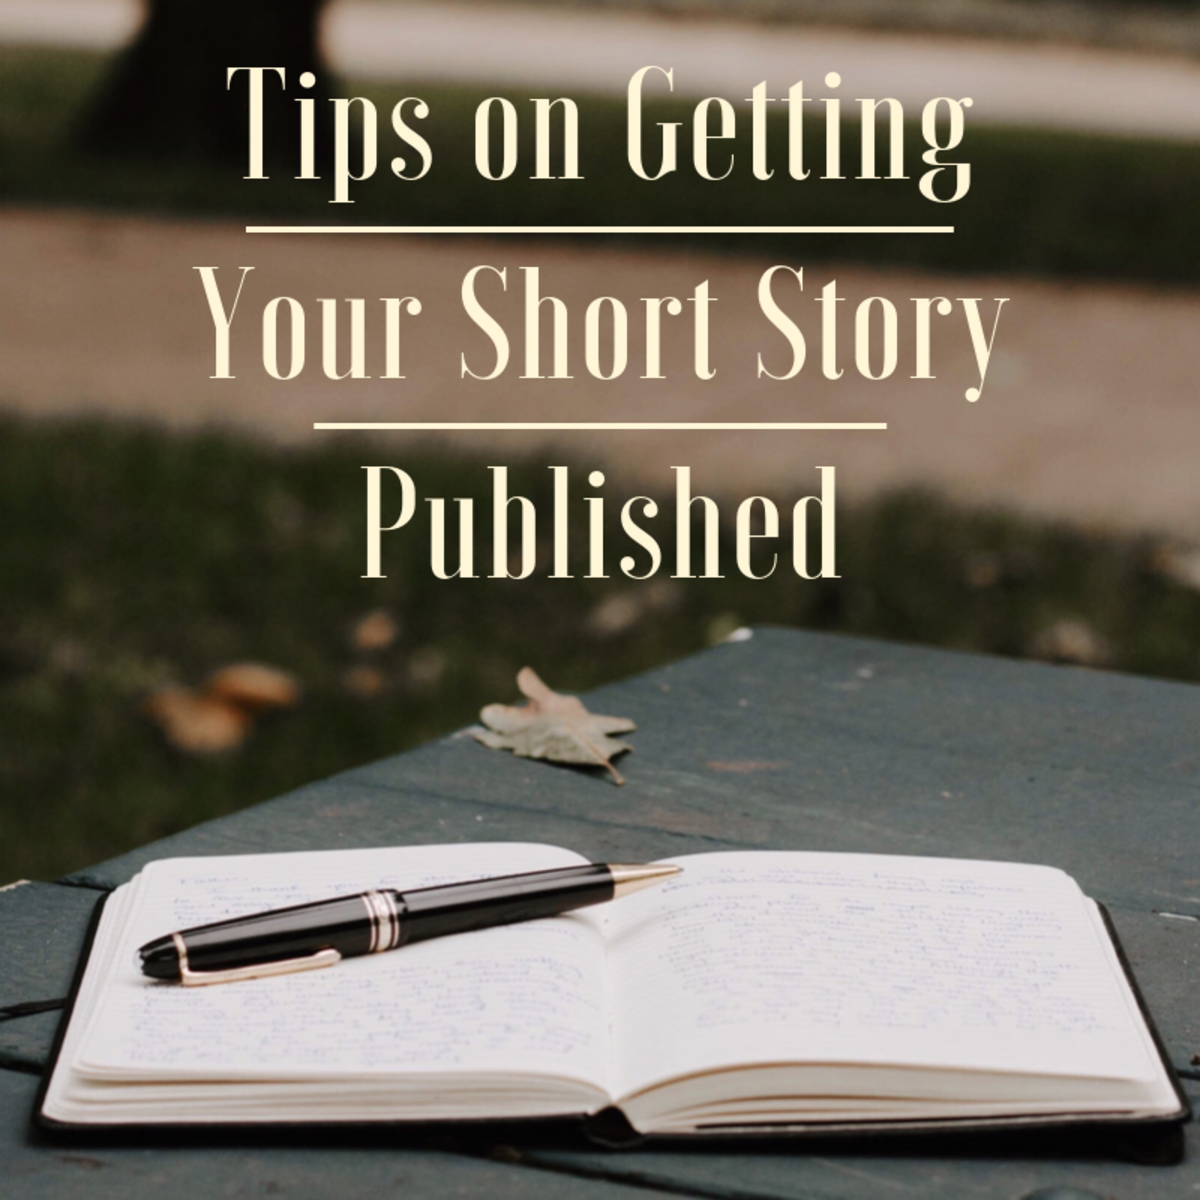 How to Write: Tips & Techniques to Have Your Short Story Published